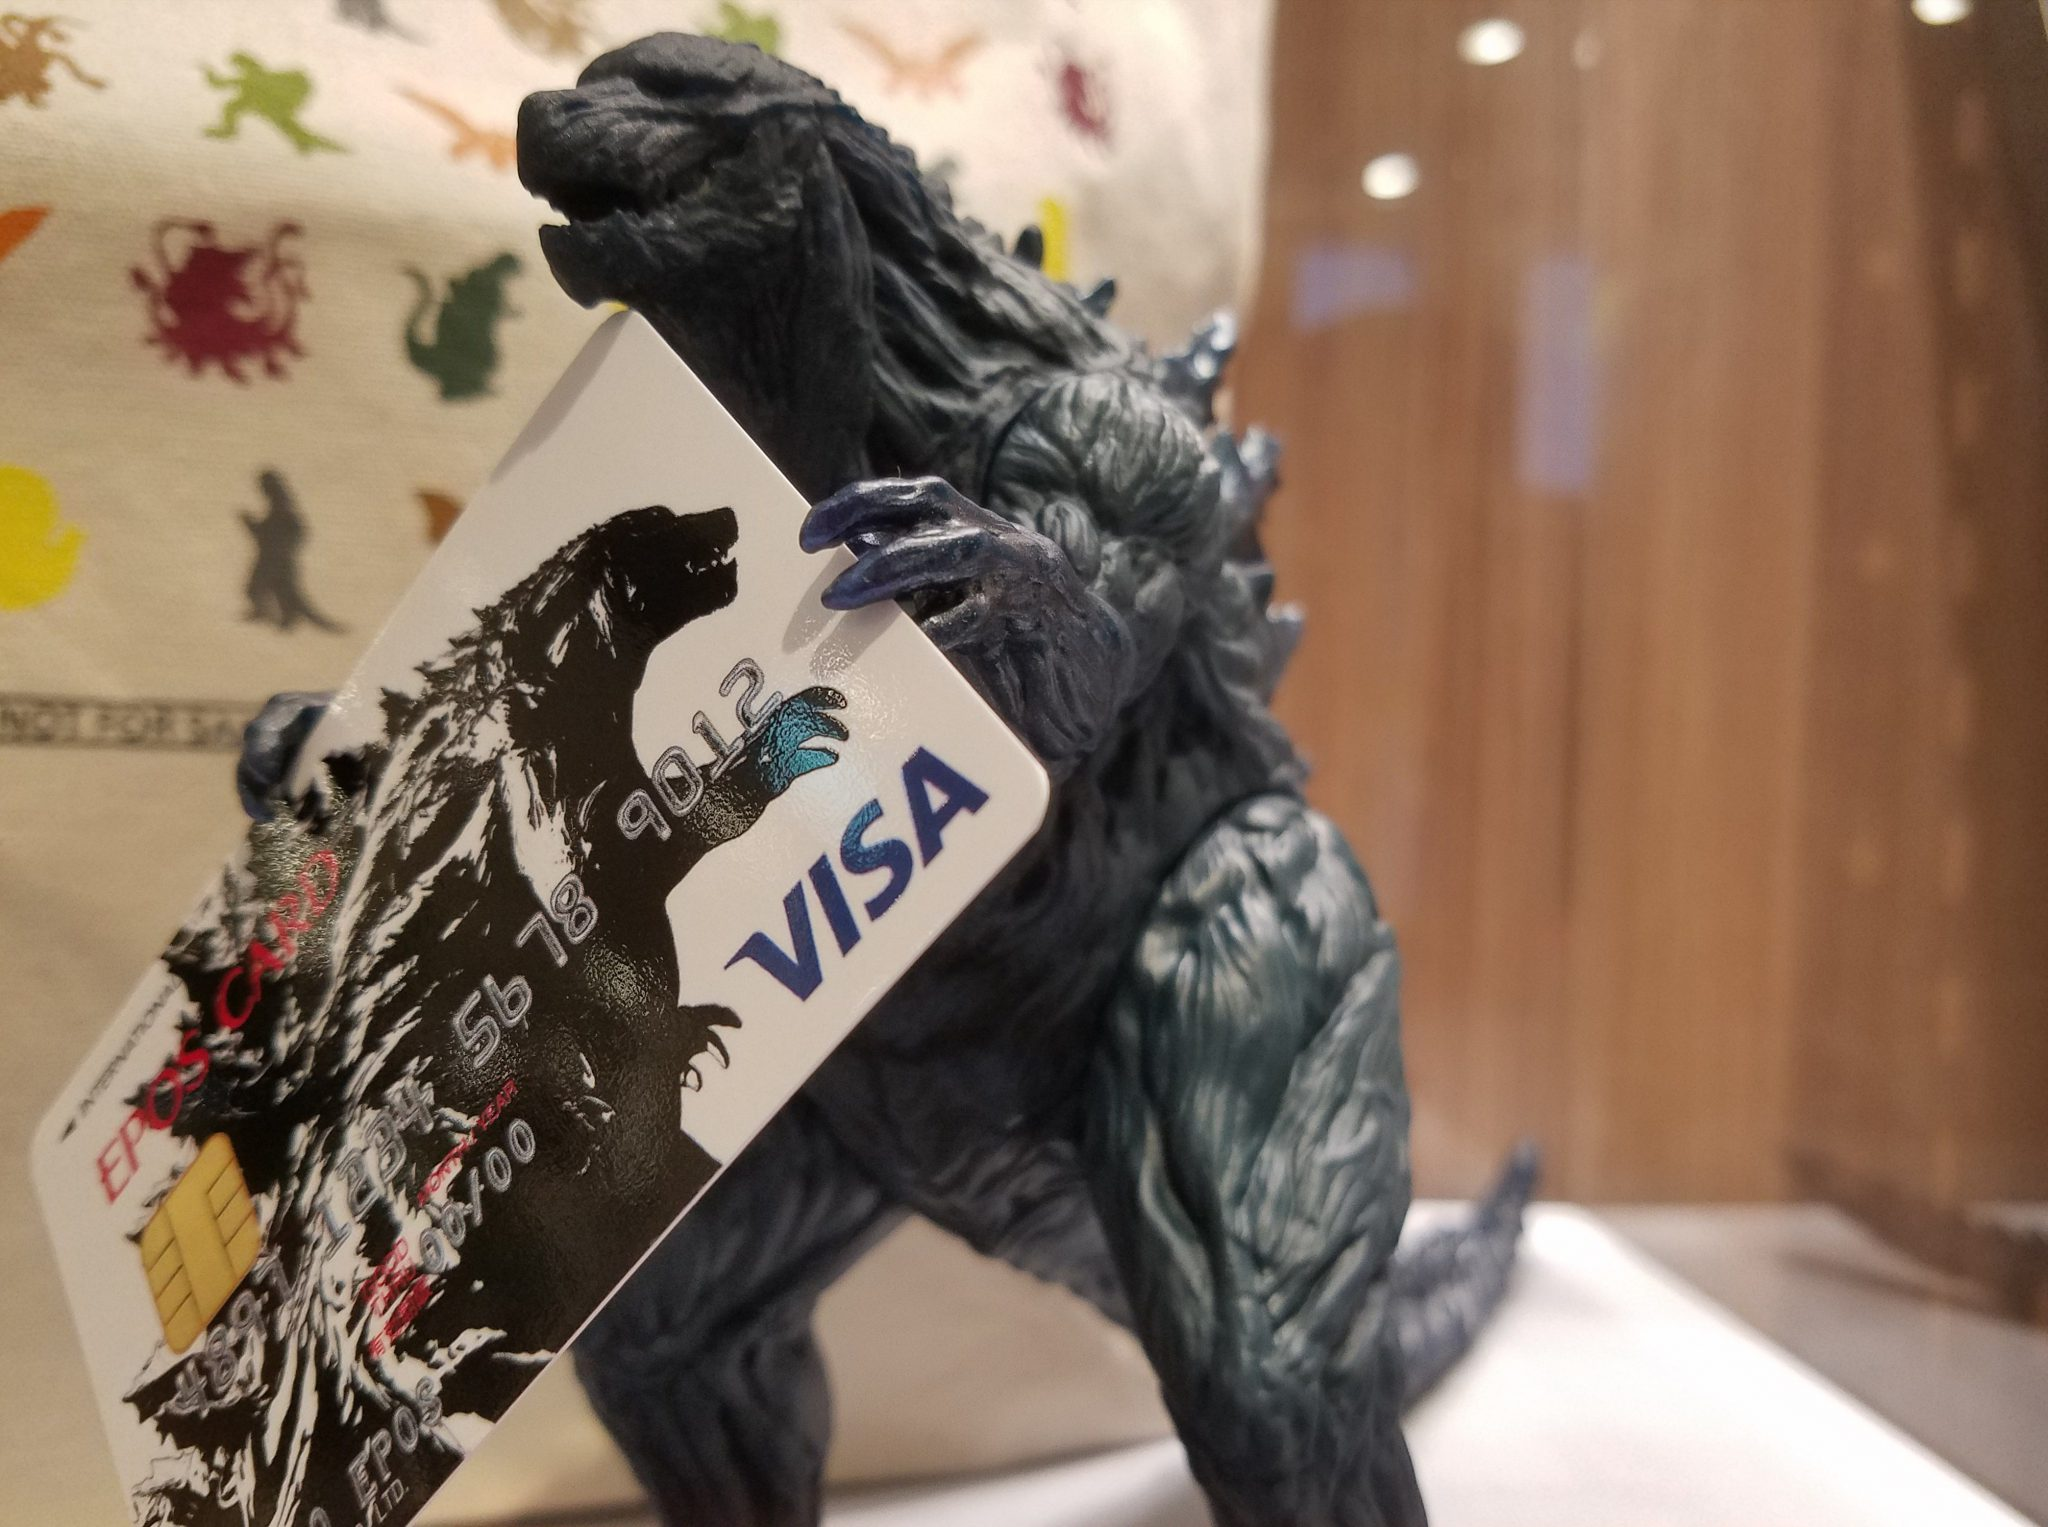 Godzilla with credit card in MODI, Shibuya seen on a Maction Planet Tokyo Private Tour